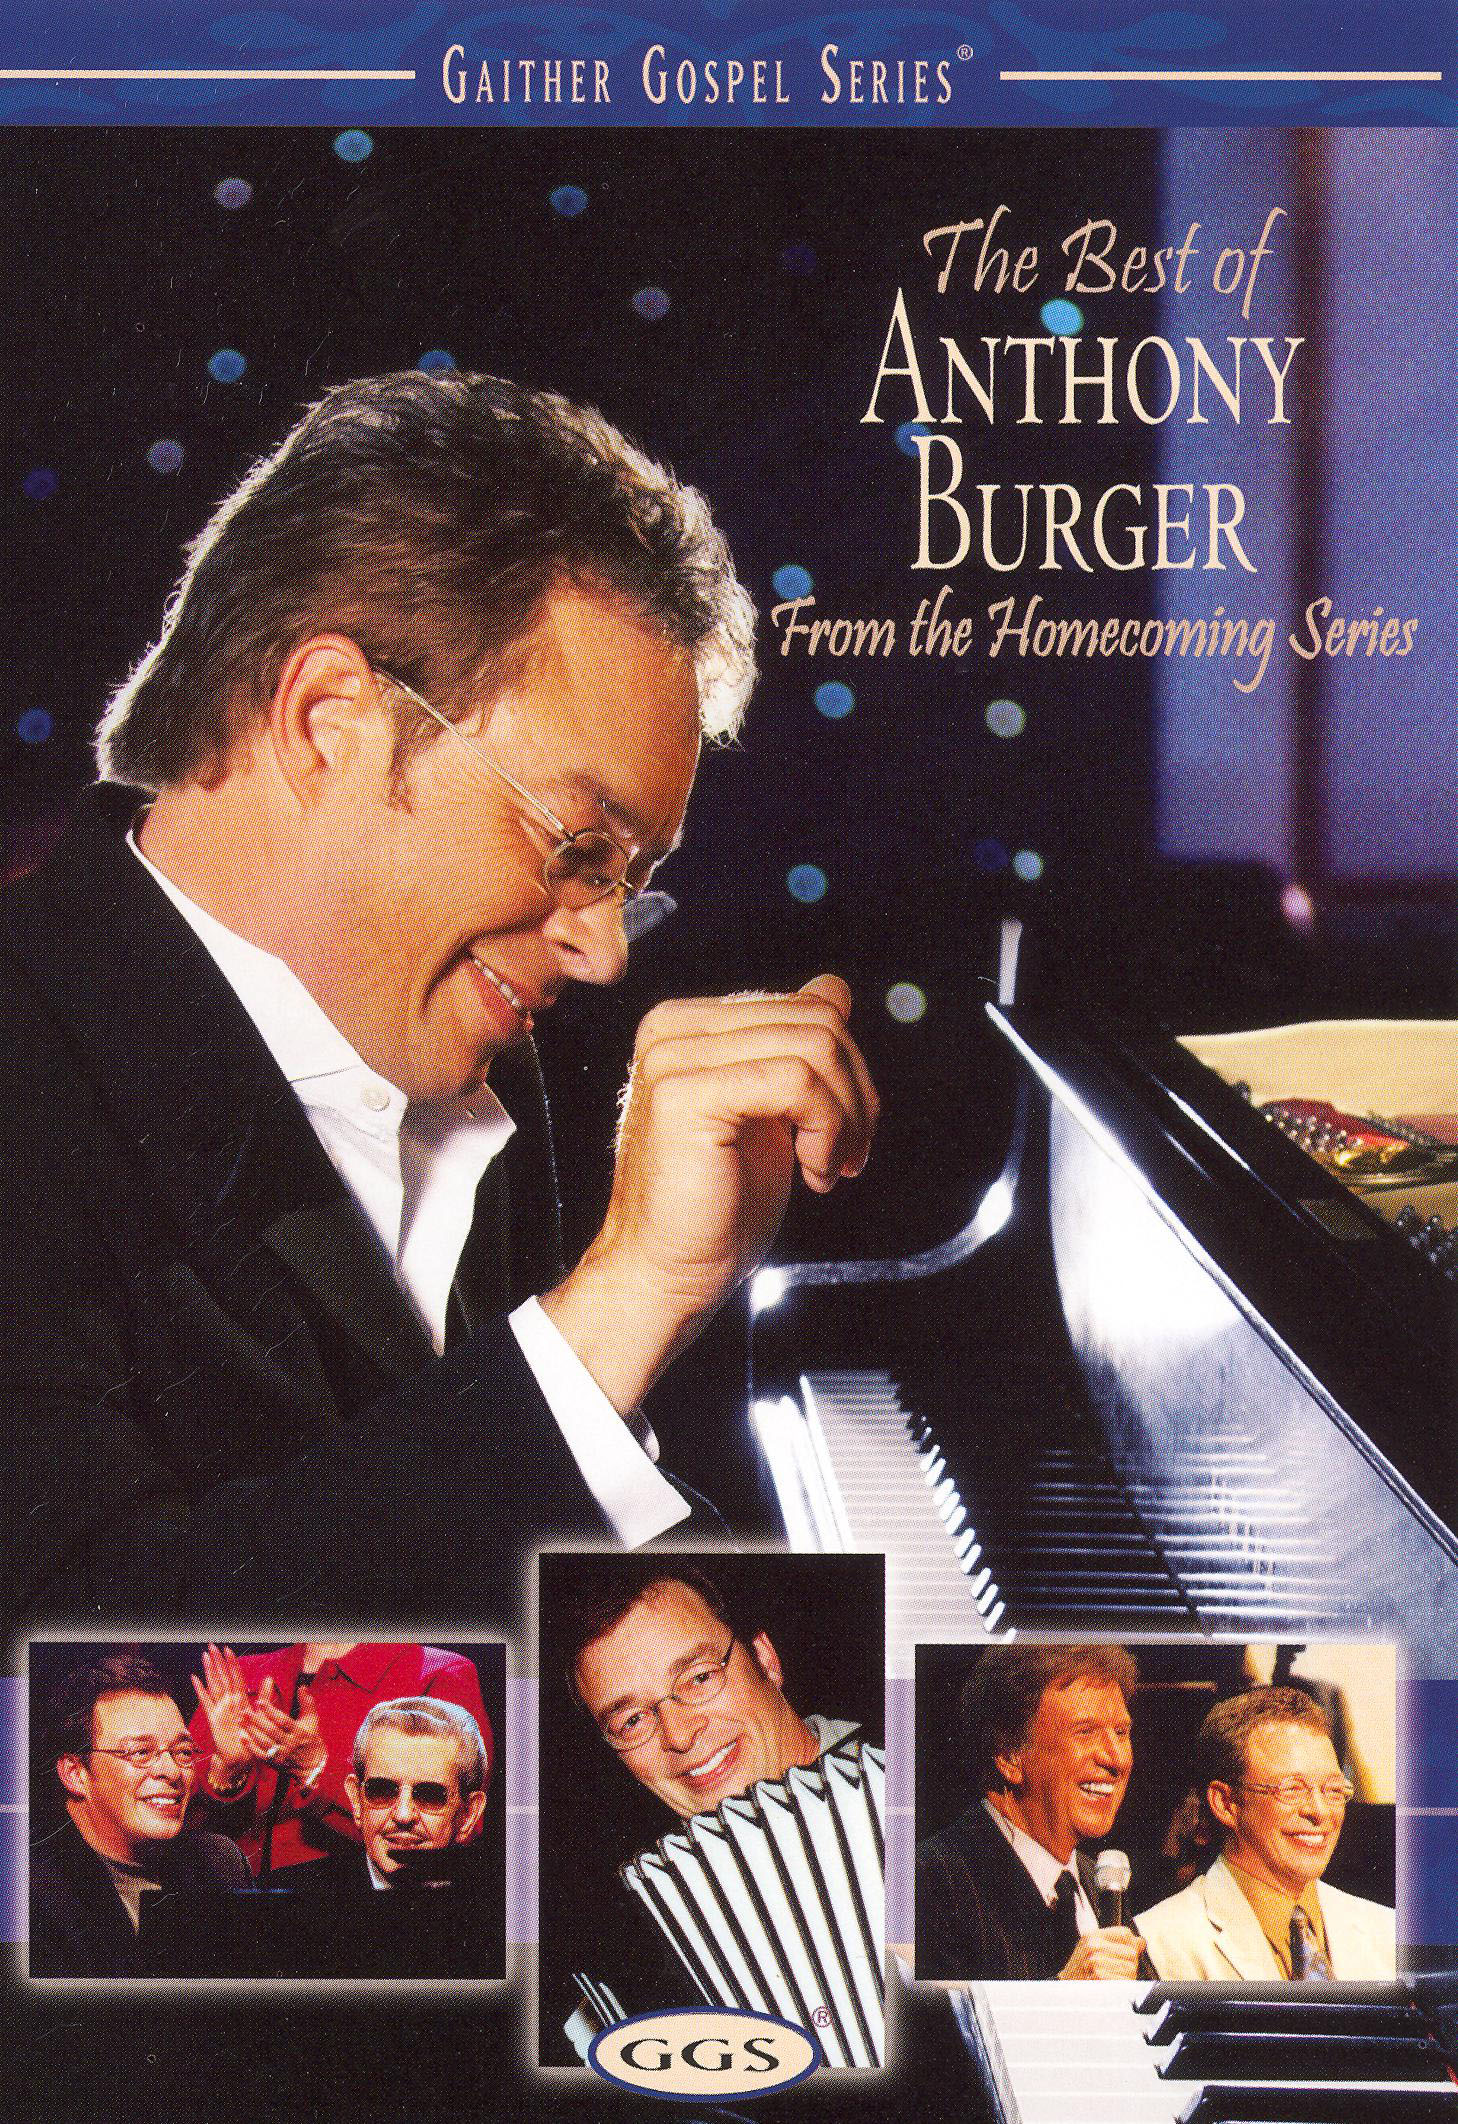 Anthony Burger: The Best of Anthony Burger